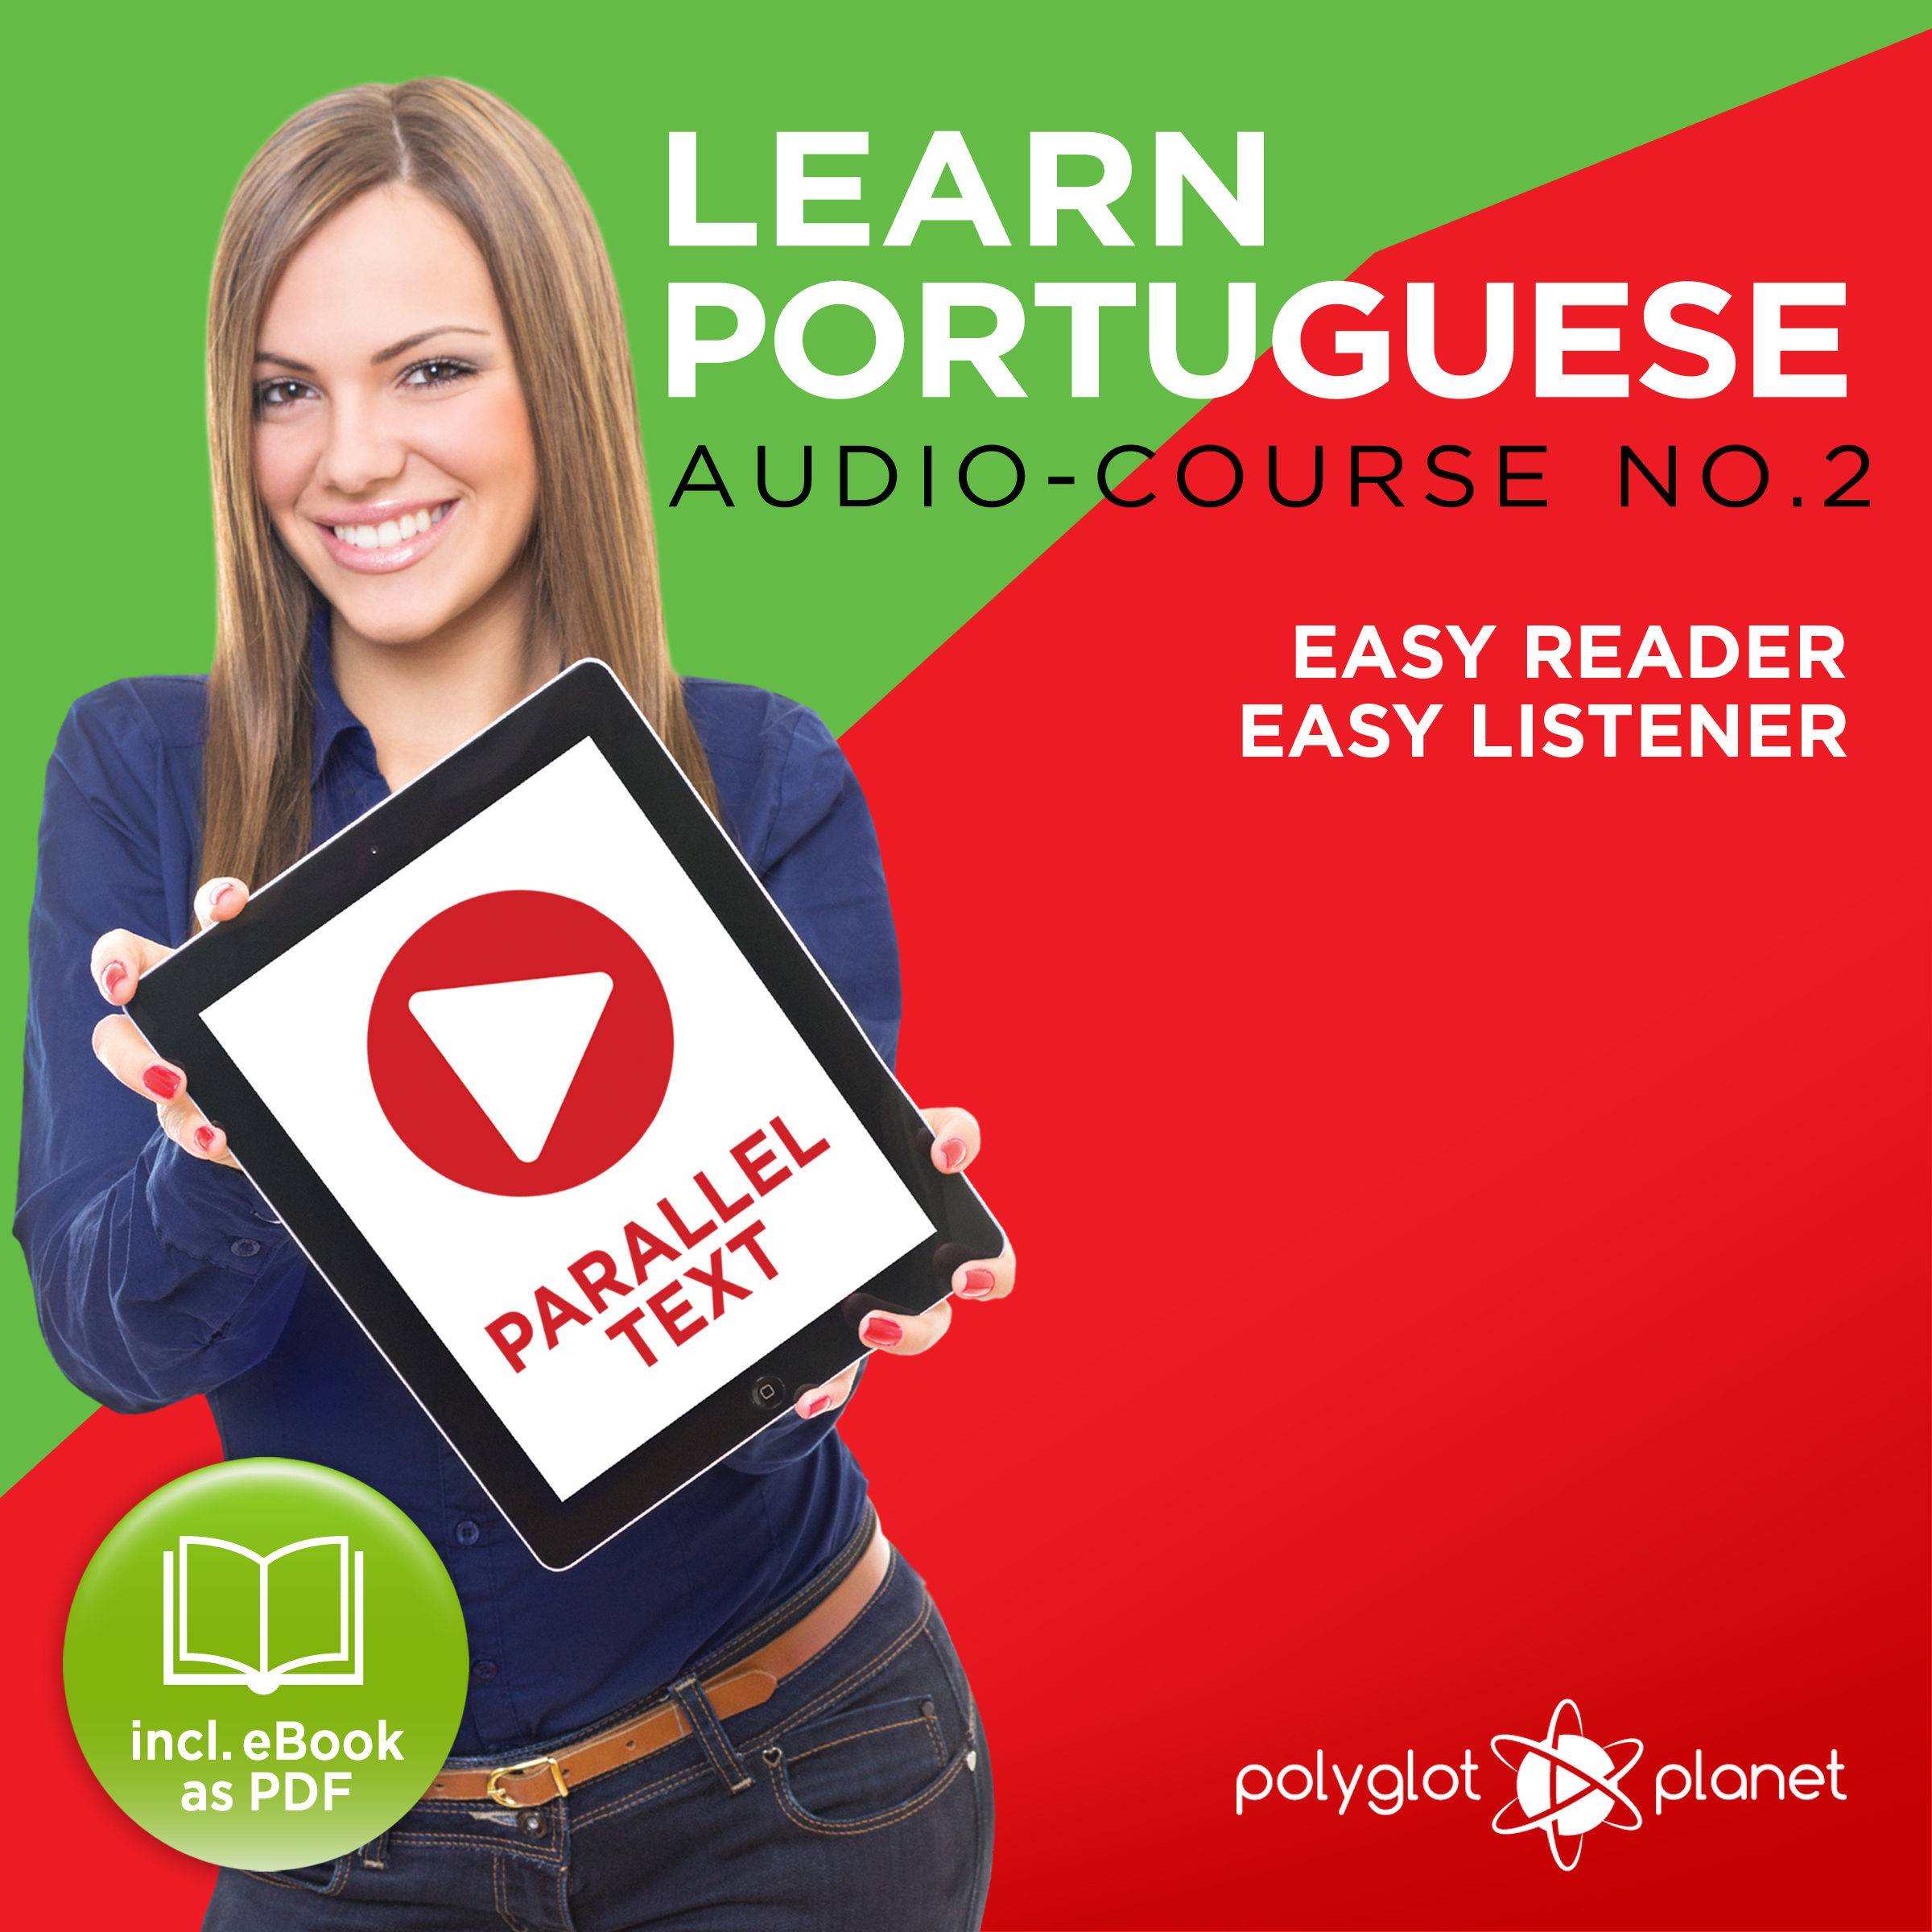 Printable Learn Portuguese - Easy Reader - Easy Listener - Parallel Text - Portuguese Audio Course No. 2 - The Portuguese Easy Reader - Easy Audio Learning Course Audiobook Cover Art